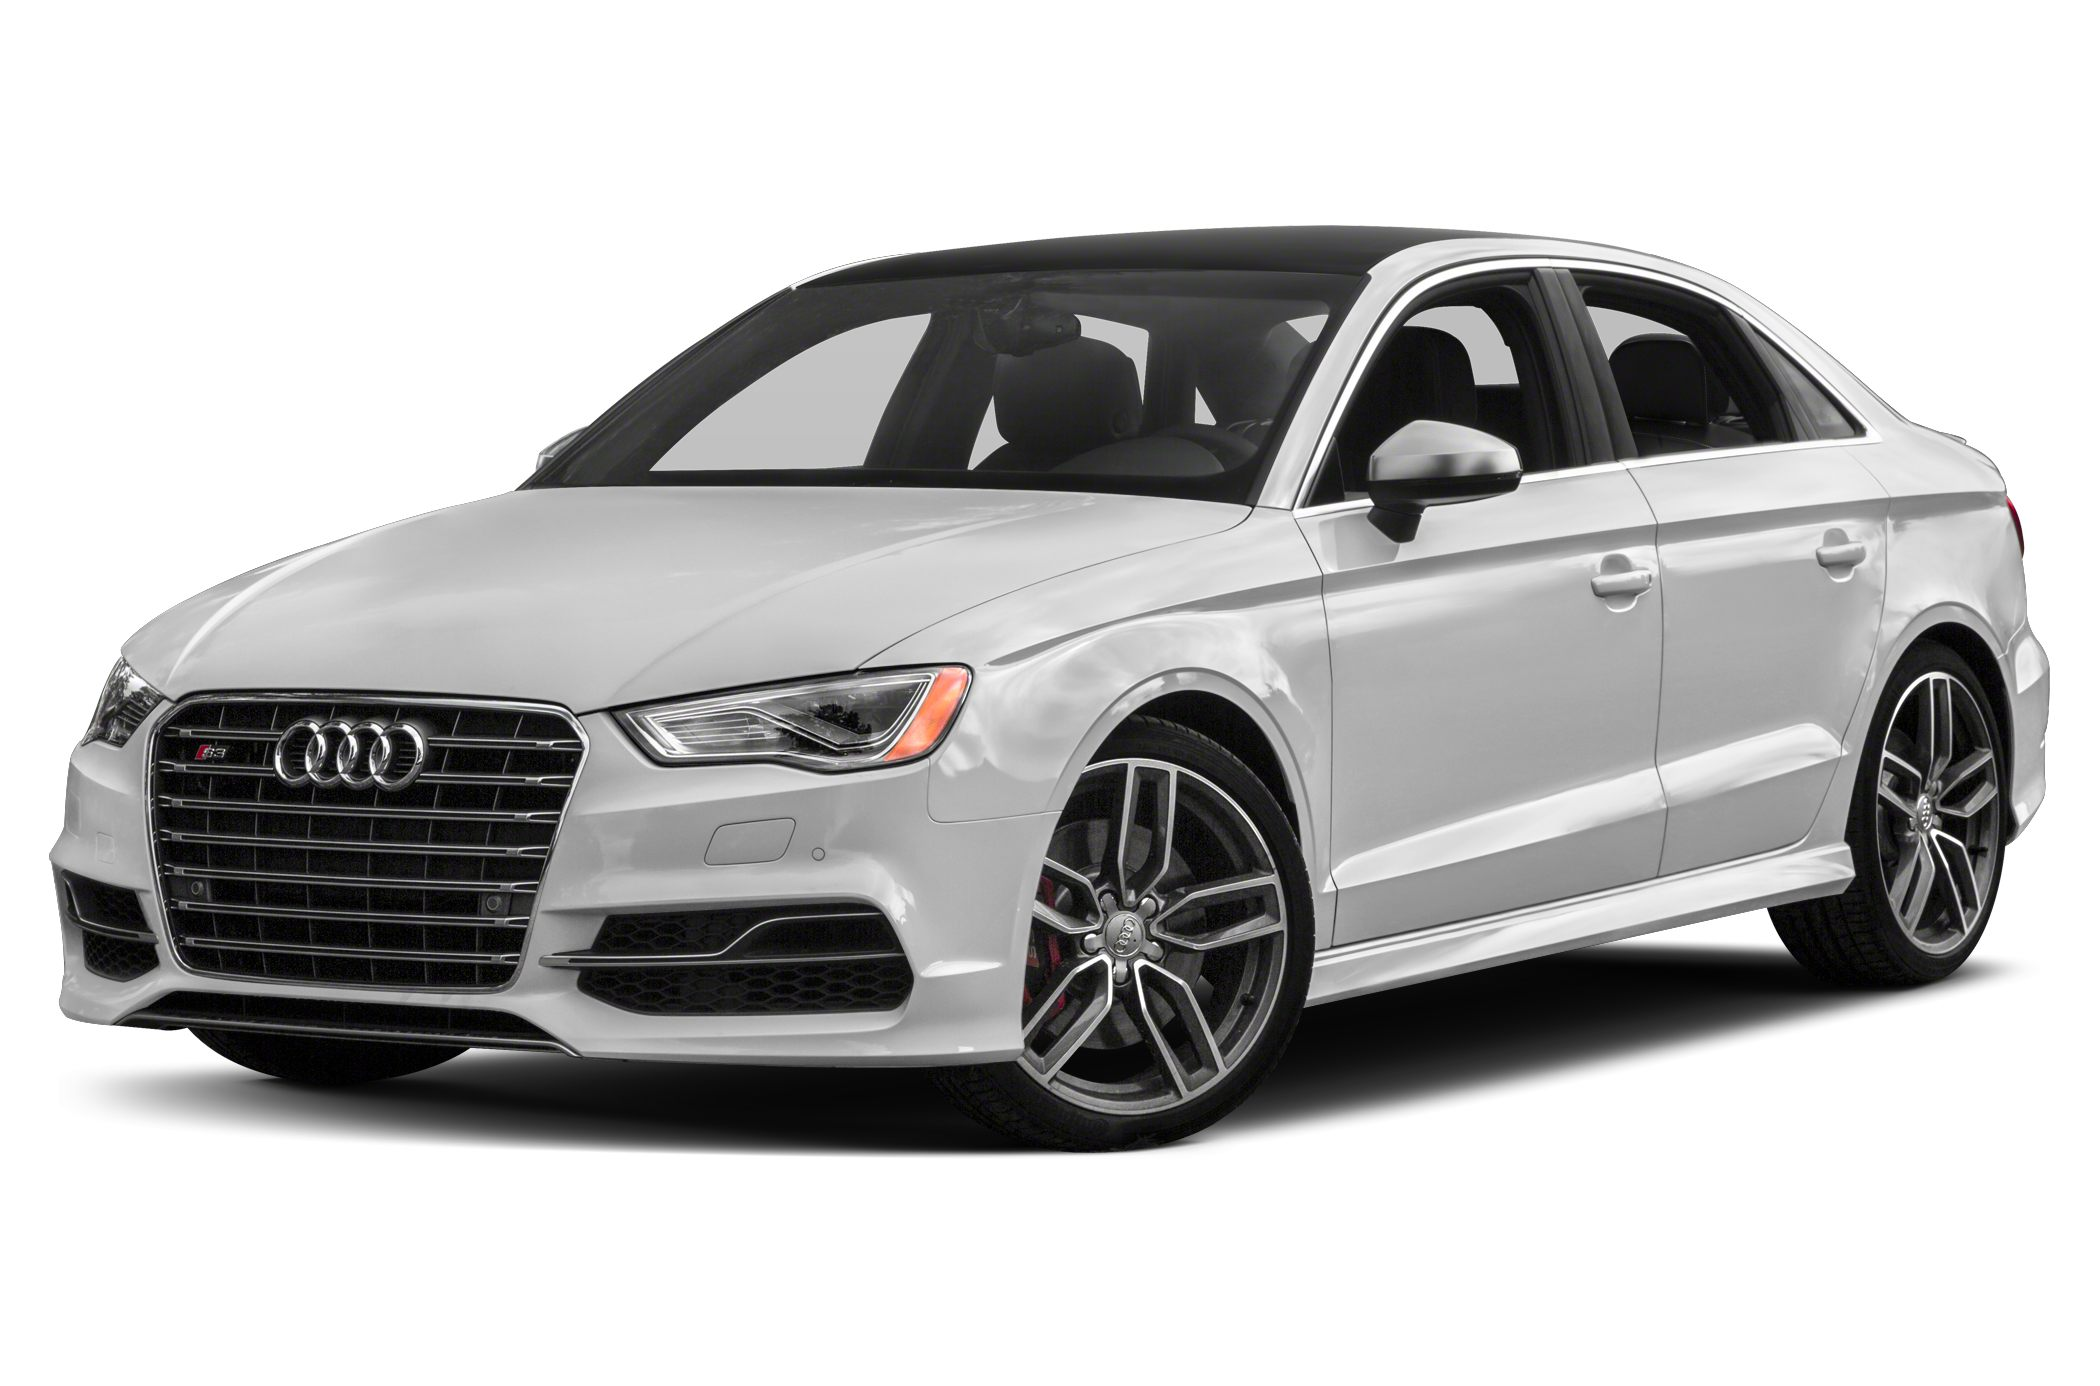 2016 Audi S3 Pricing And Specs